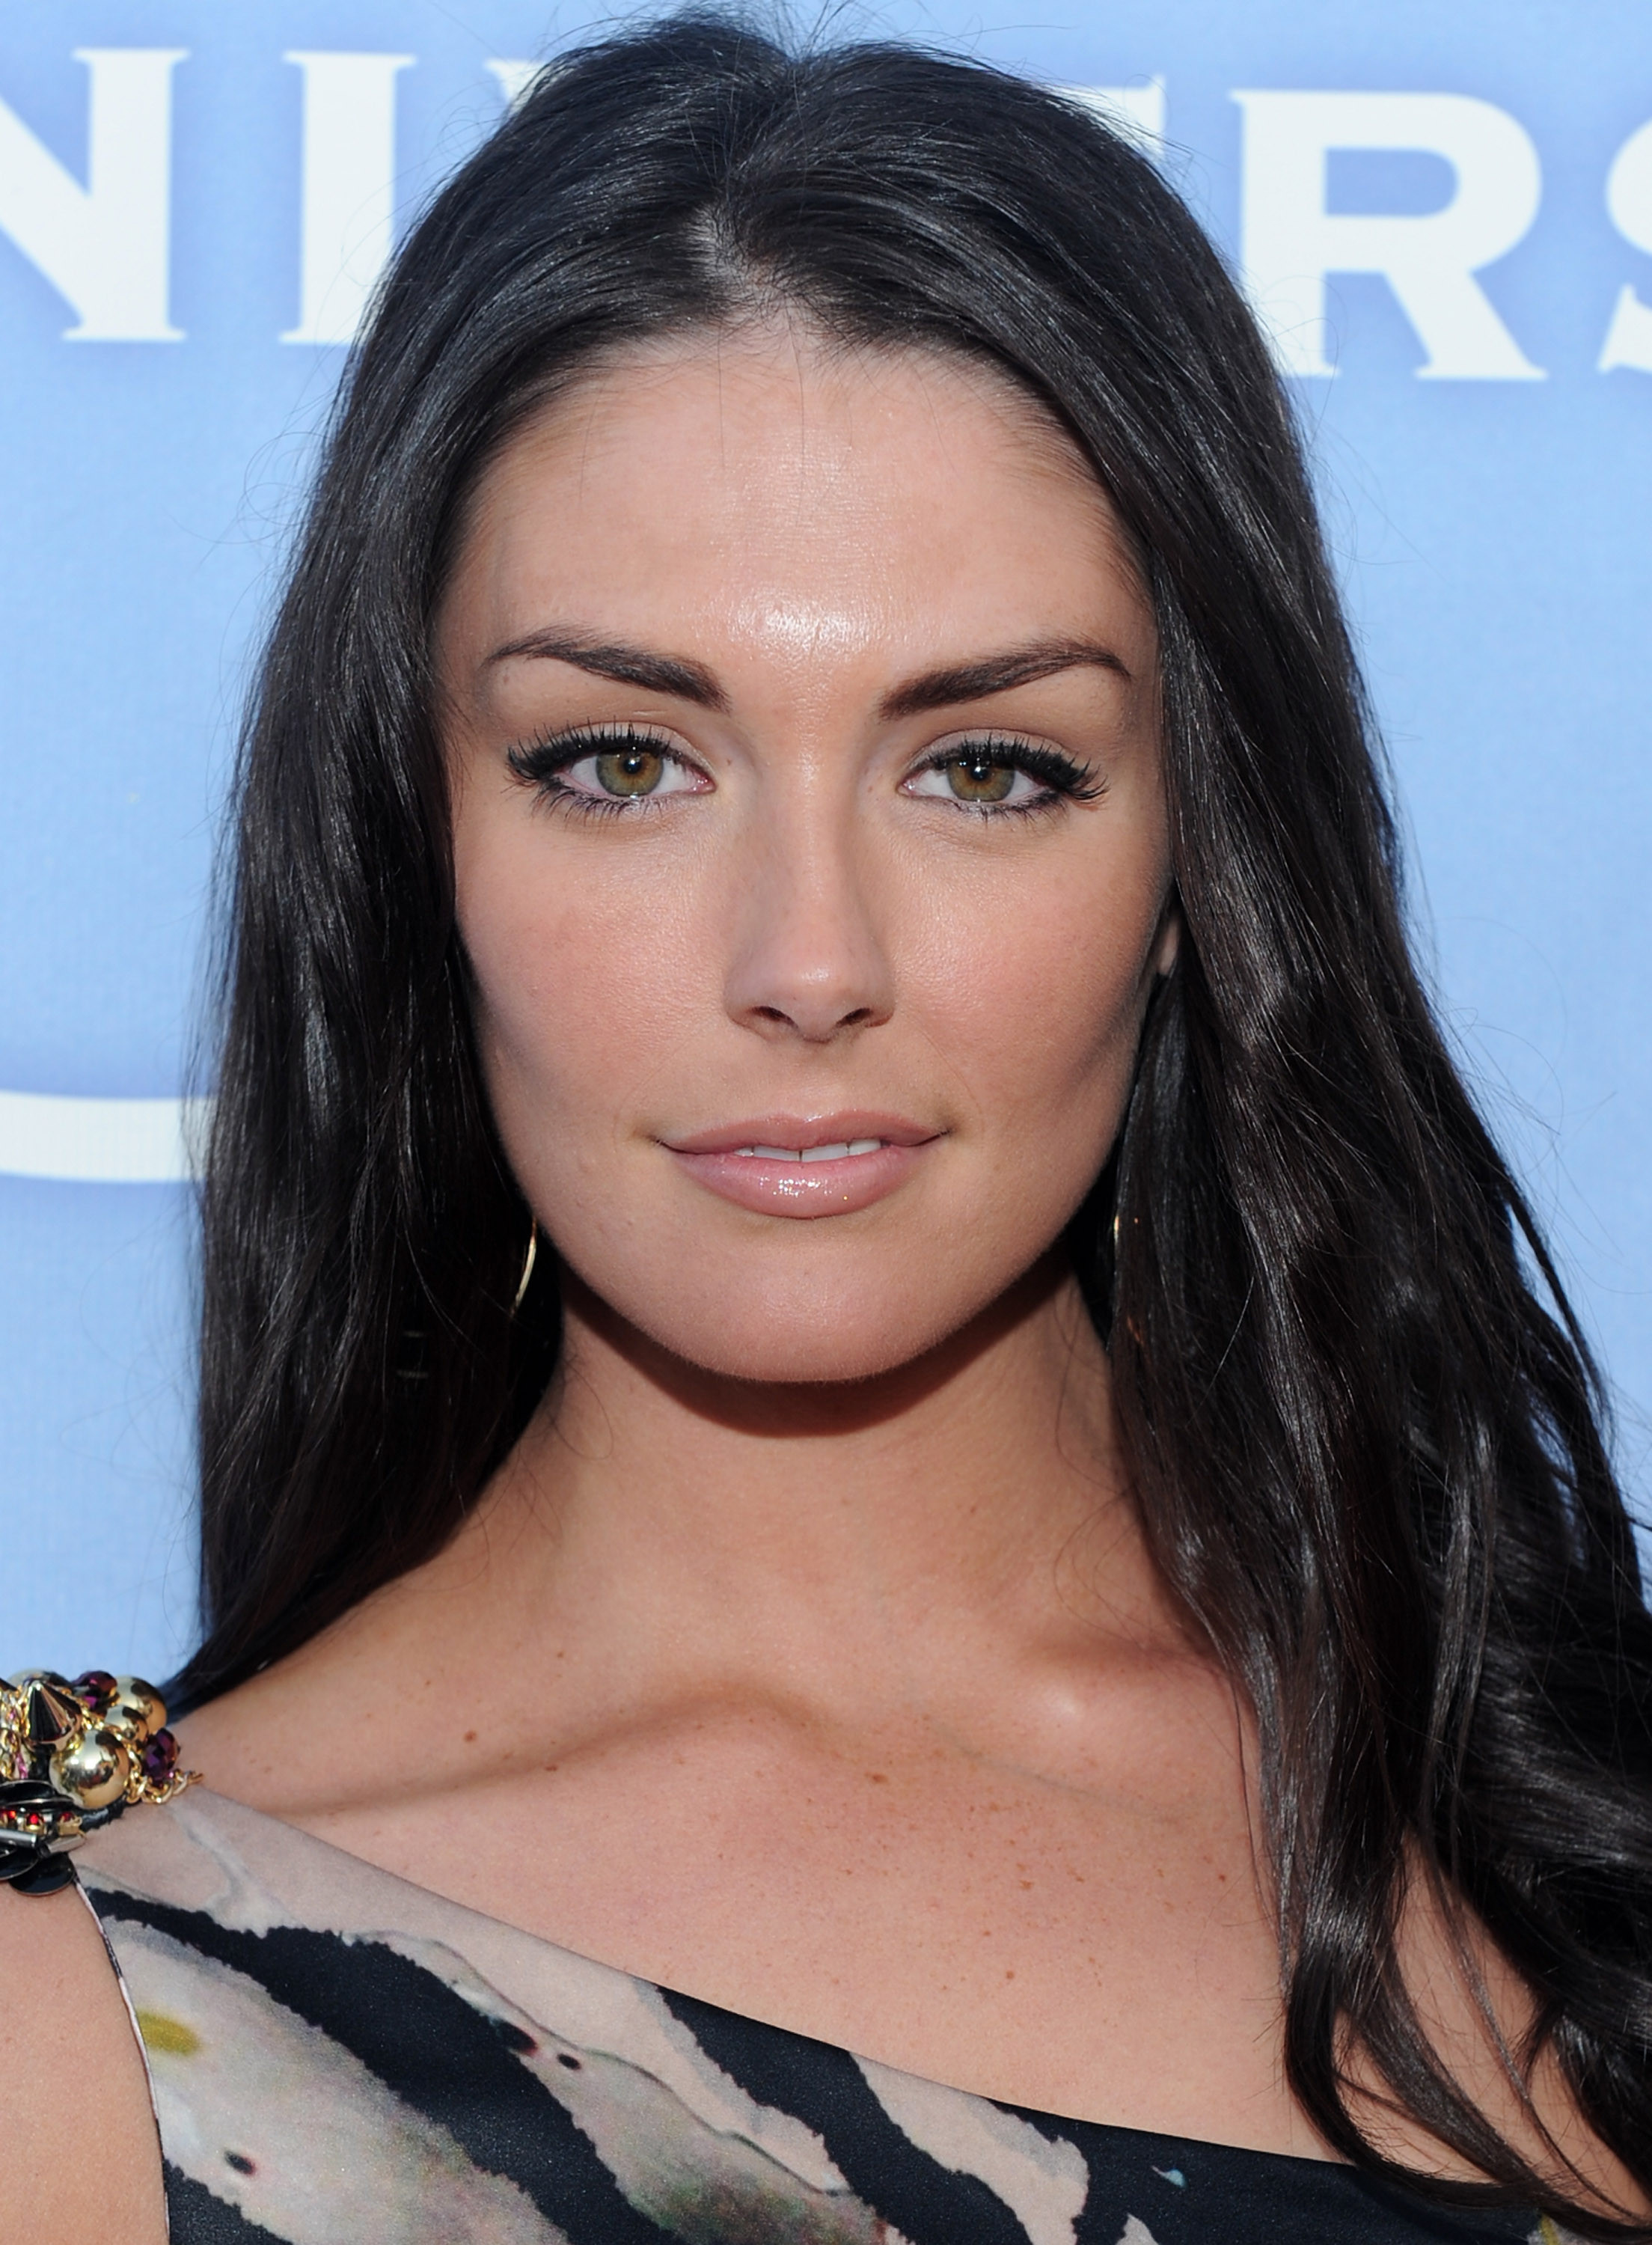 Taylor Cole earned a  million dollar salary, leaving the net worth at 1.3 million in 2017